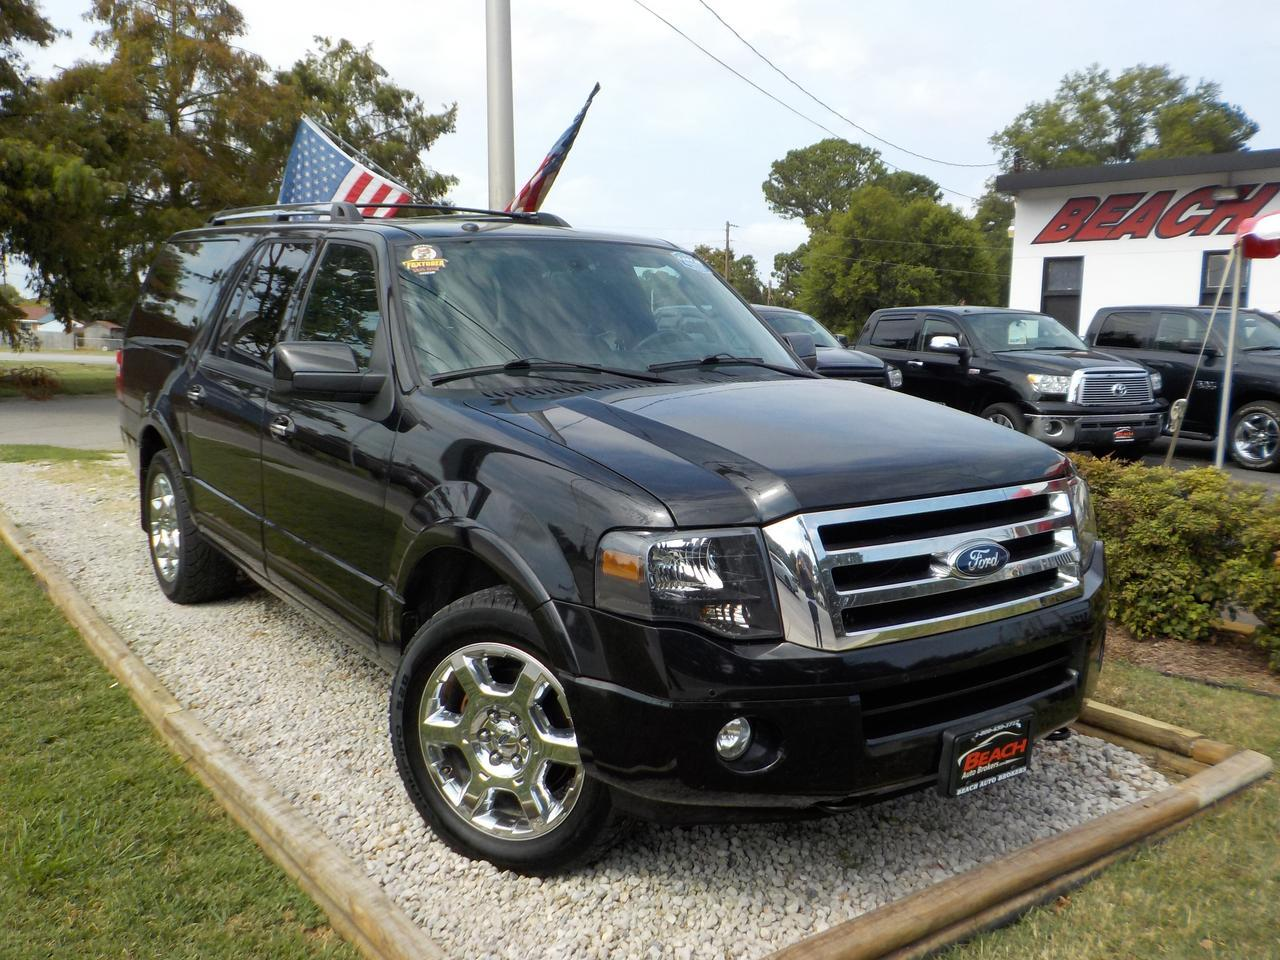 2013 FORD EXPEDITION EL LIMITED 4X4, WARRANTY, LEATHER, NAV, HEATED/COOLED SEATS, DVD PLAYER, BACKUP CAM, FULLY LOADED!